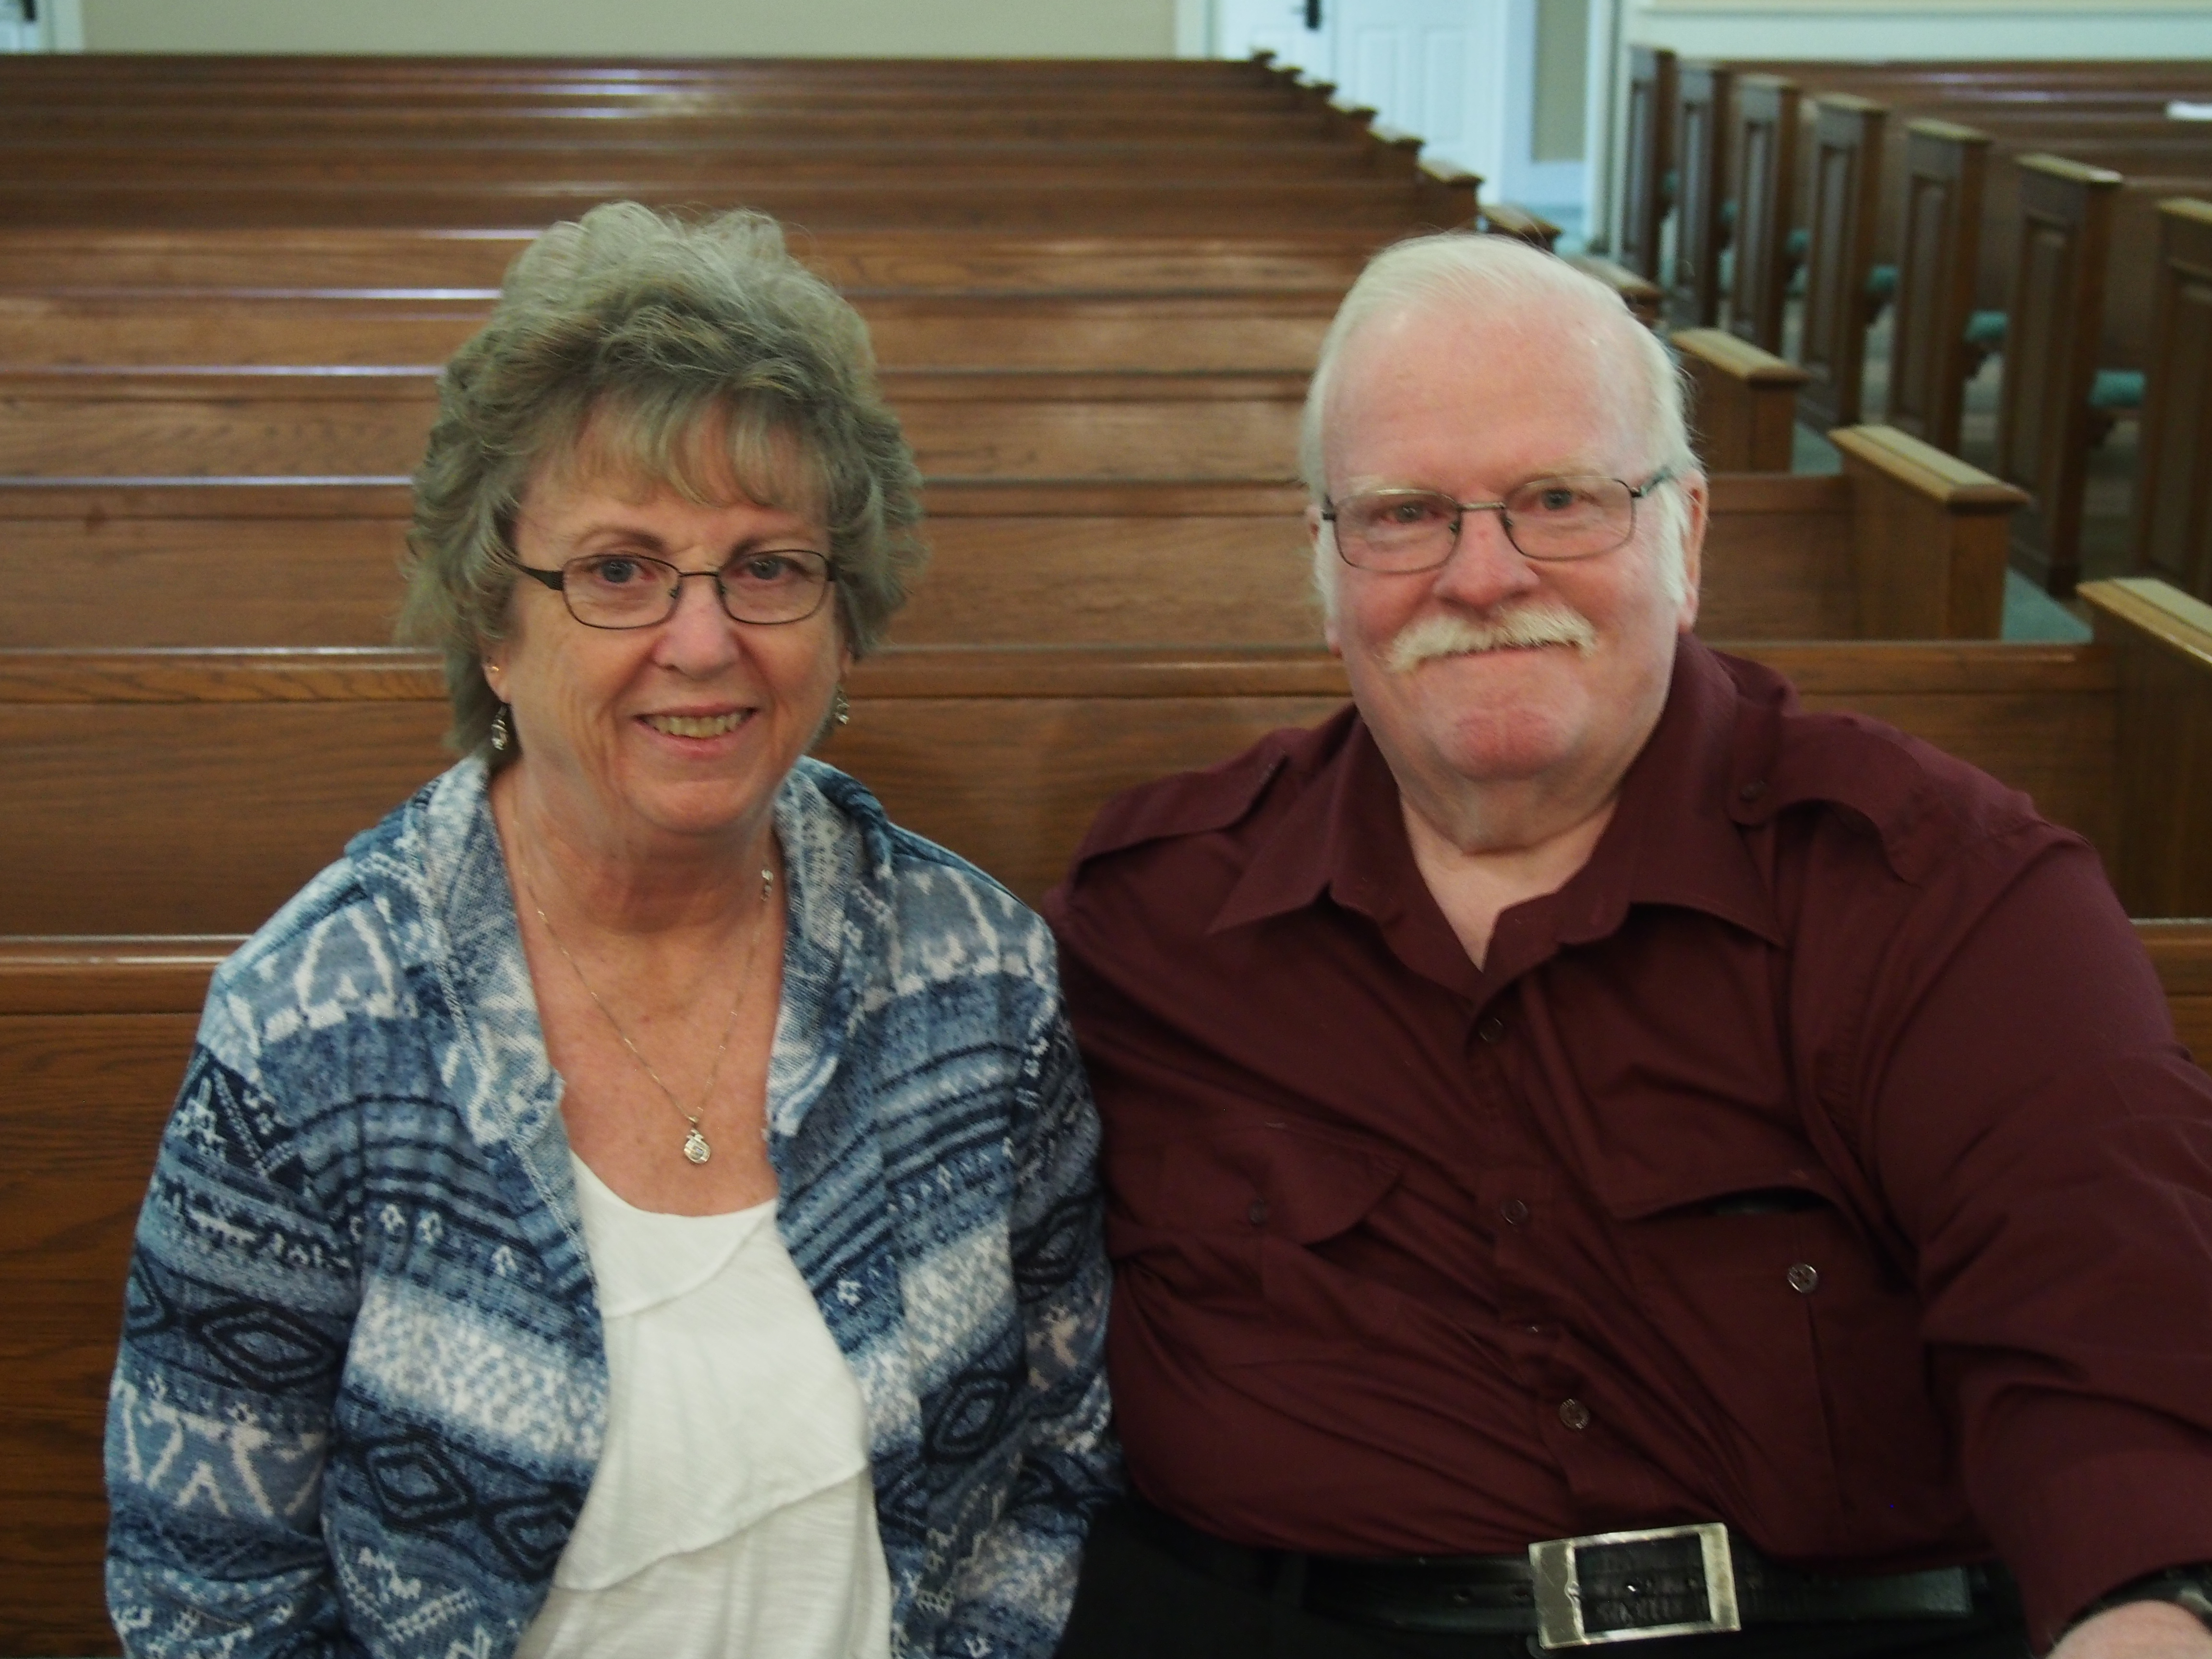 We are pleased to welcome new members Gail and Ray Jones